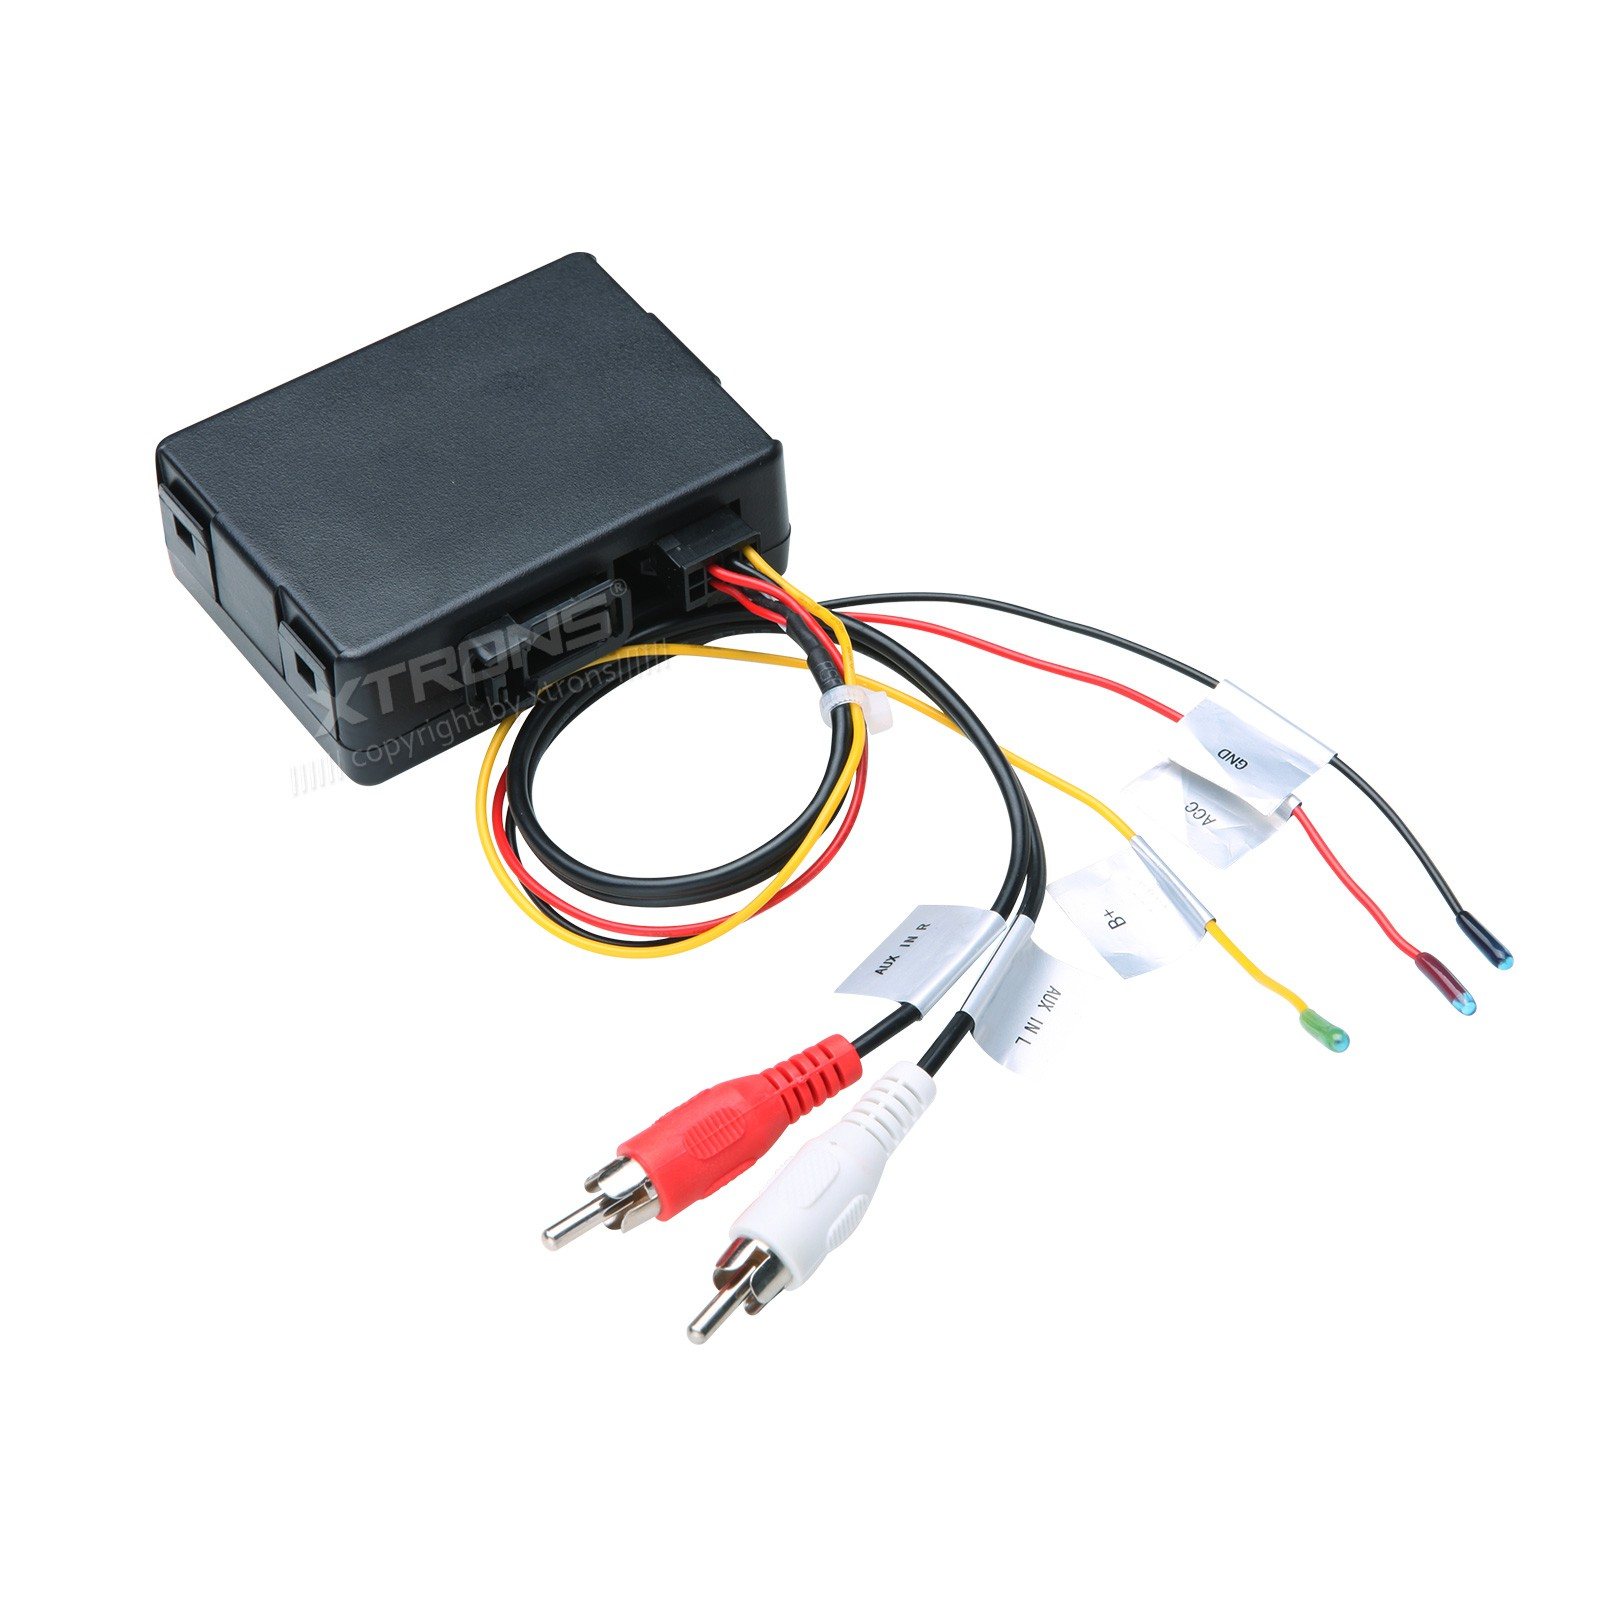 Mercedes Benz O Vin Decoder: XTRONS Optical Fiber Decoder Box For Mercedes-Benz E / CLS